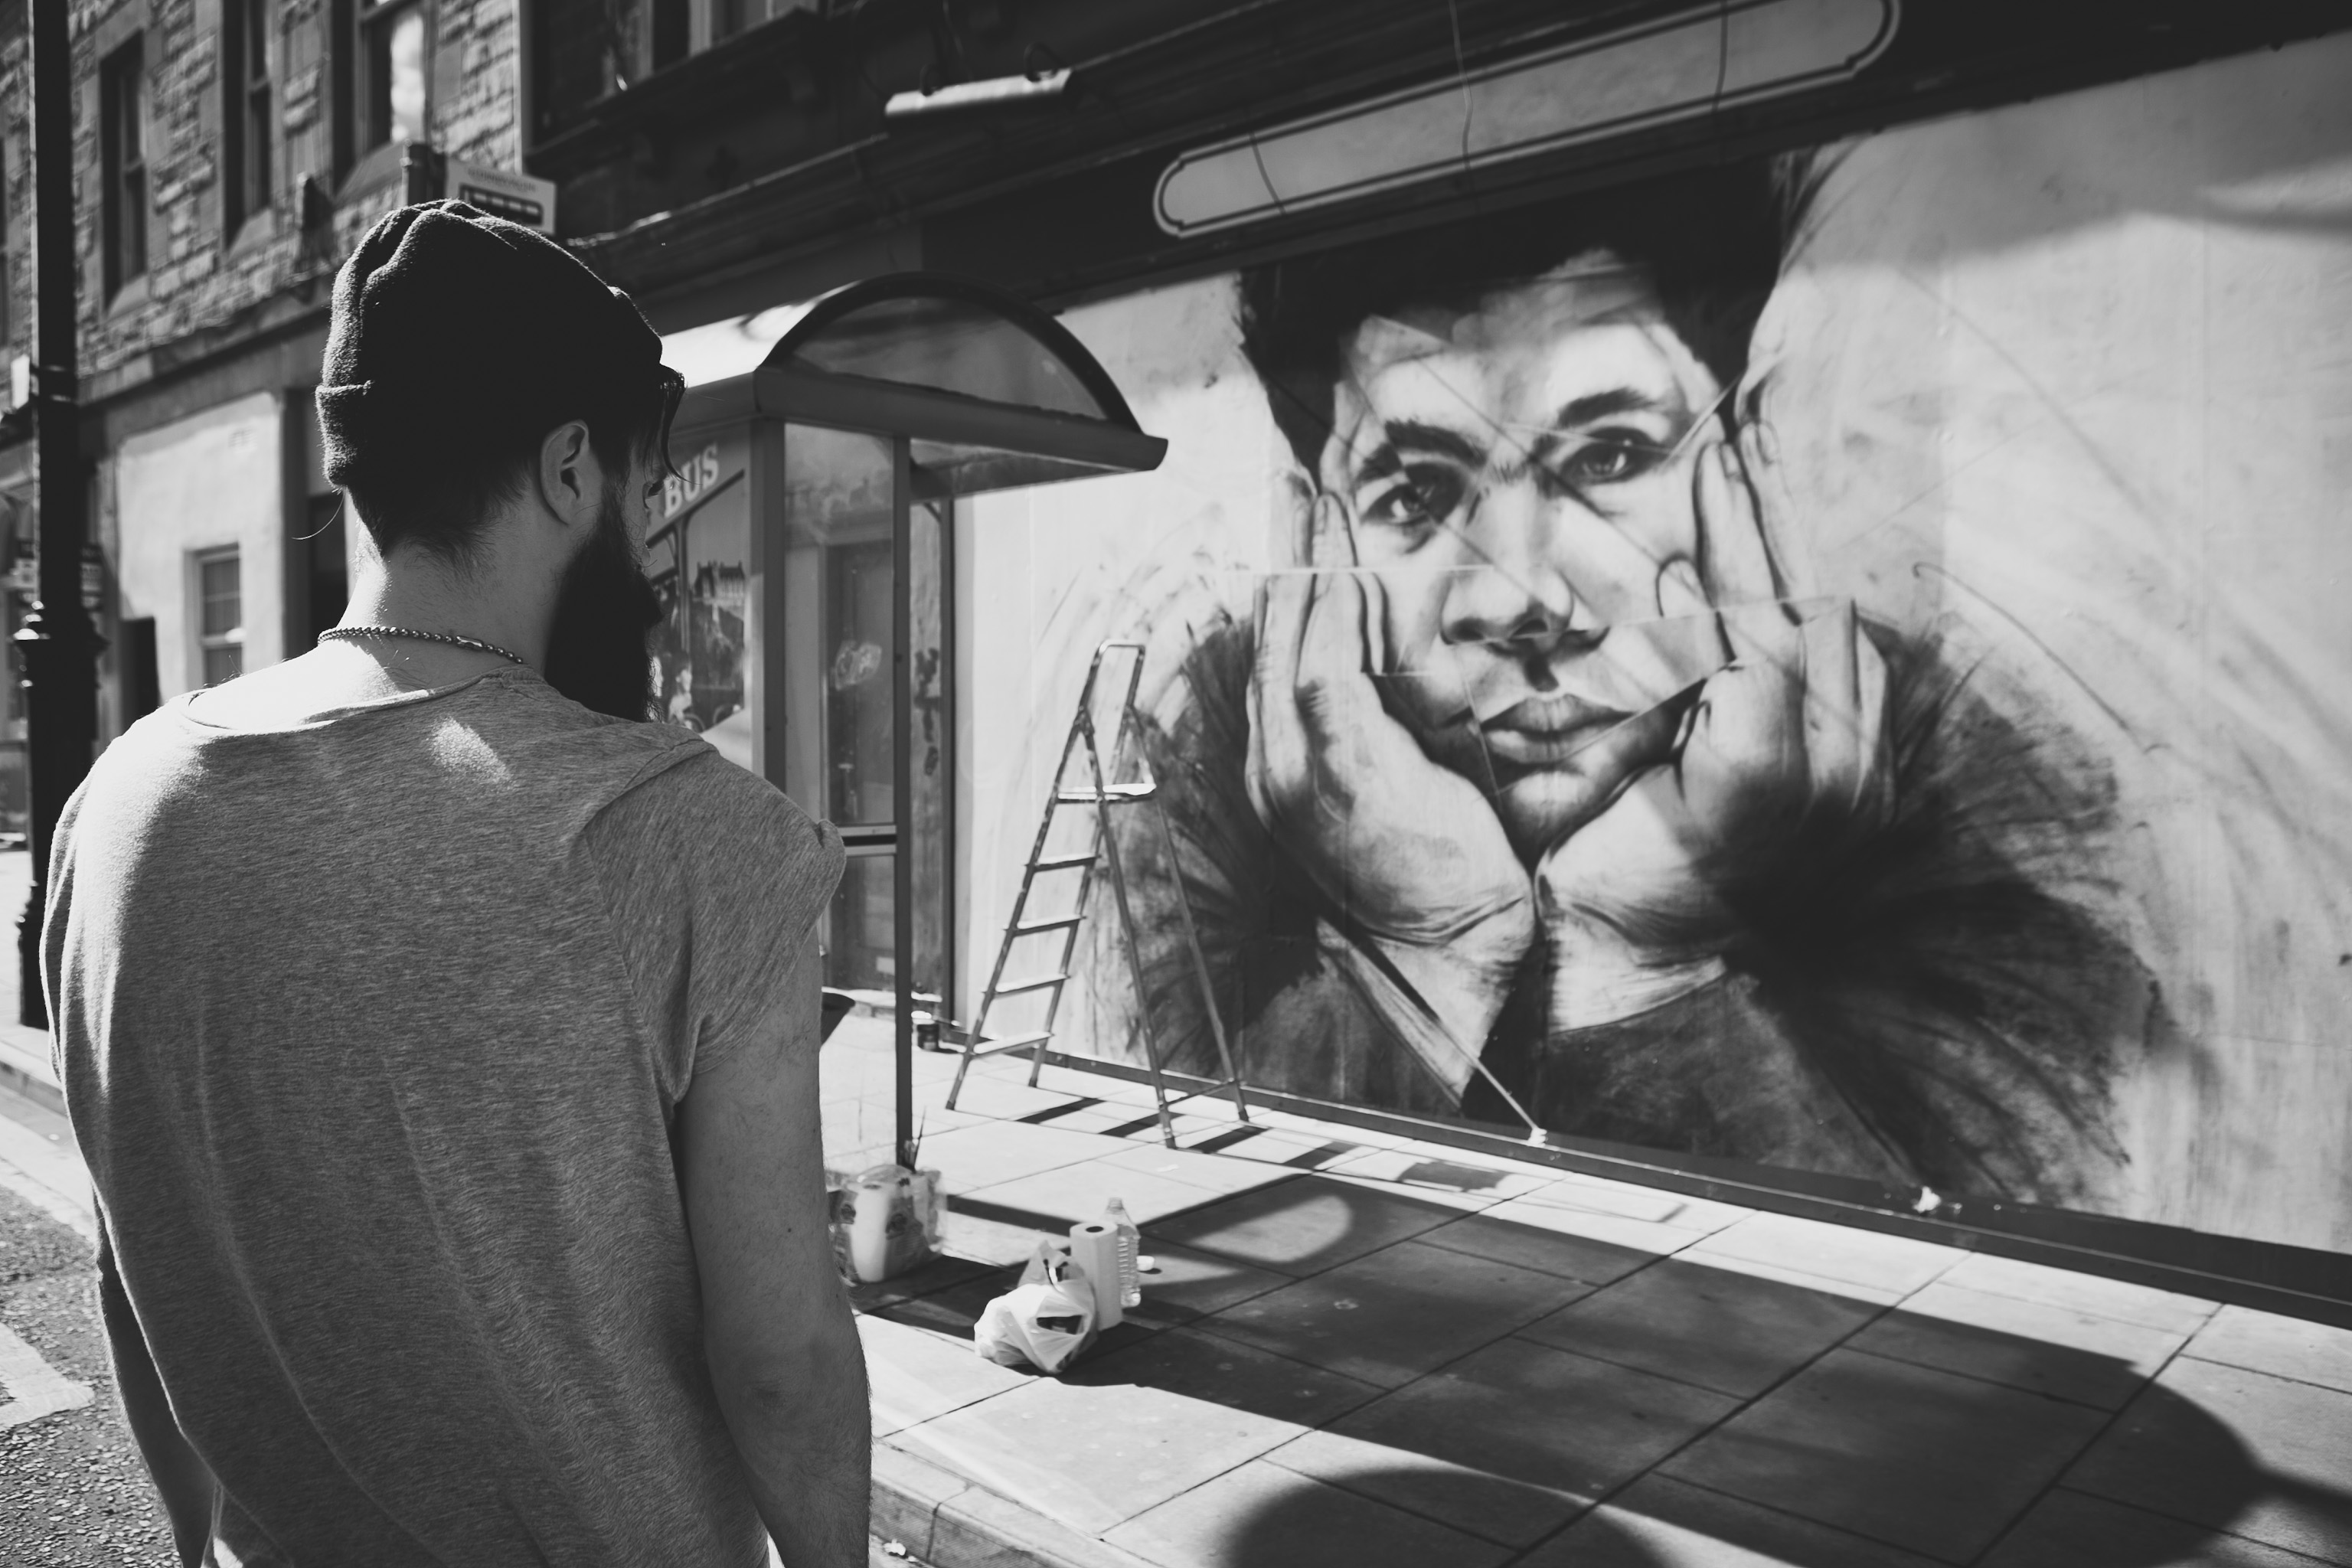 A man looks onto the mural showing a boy with his face in his hands